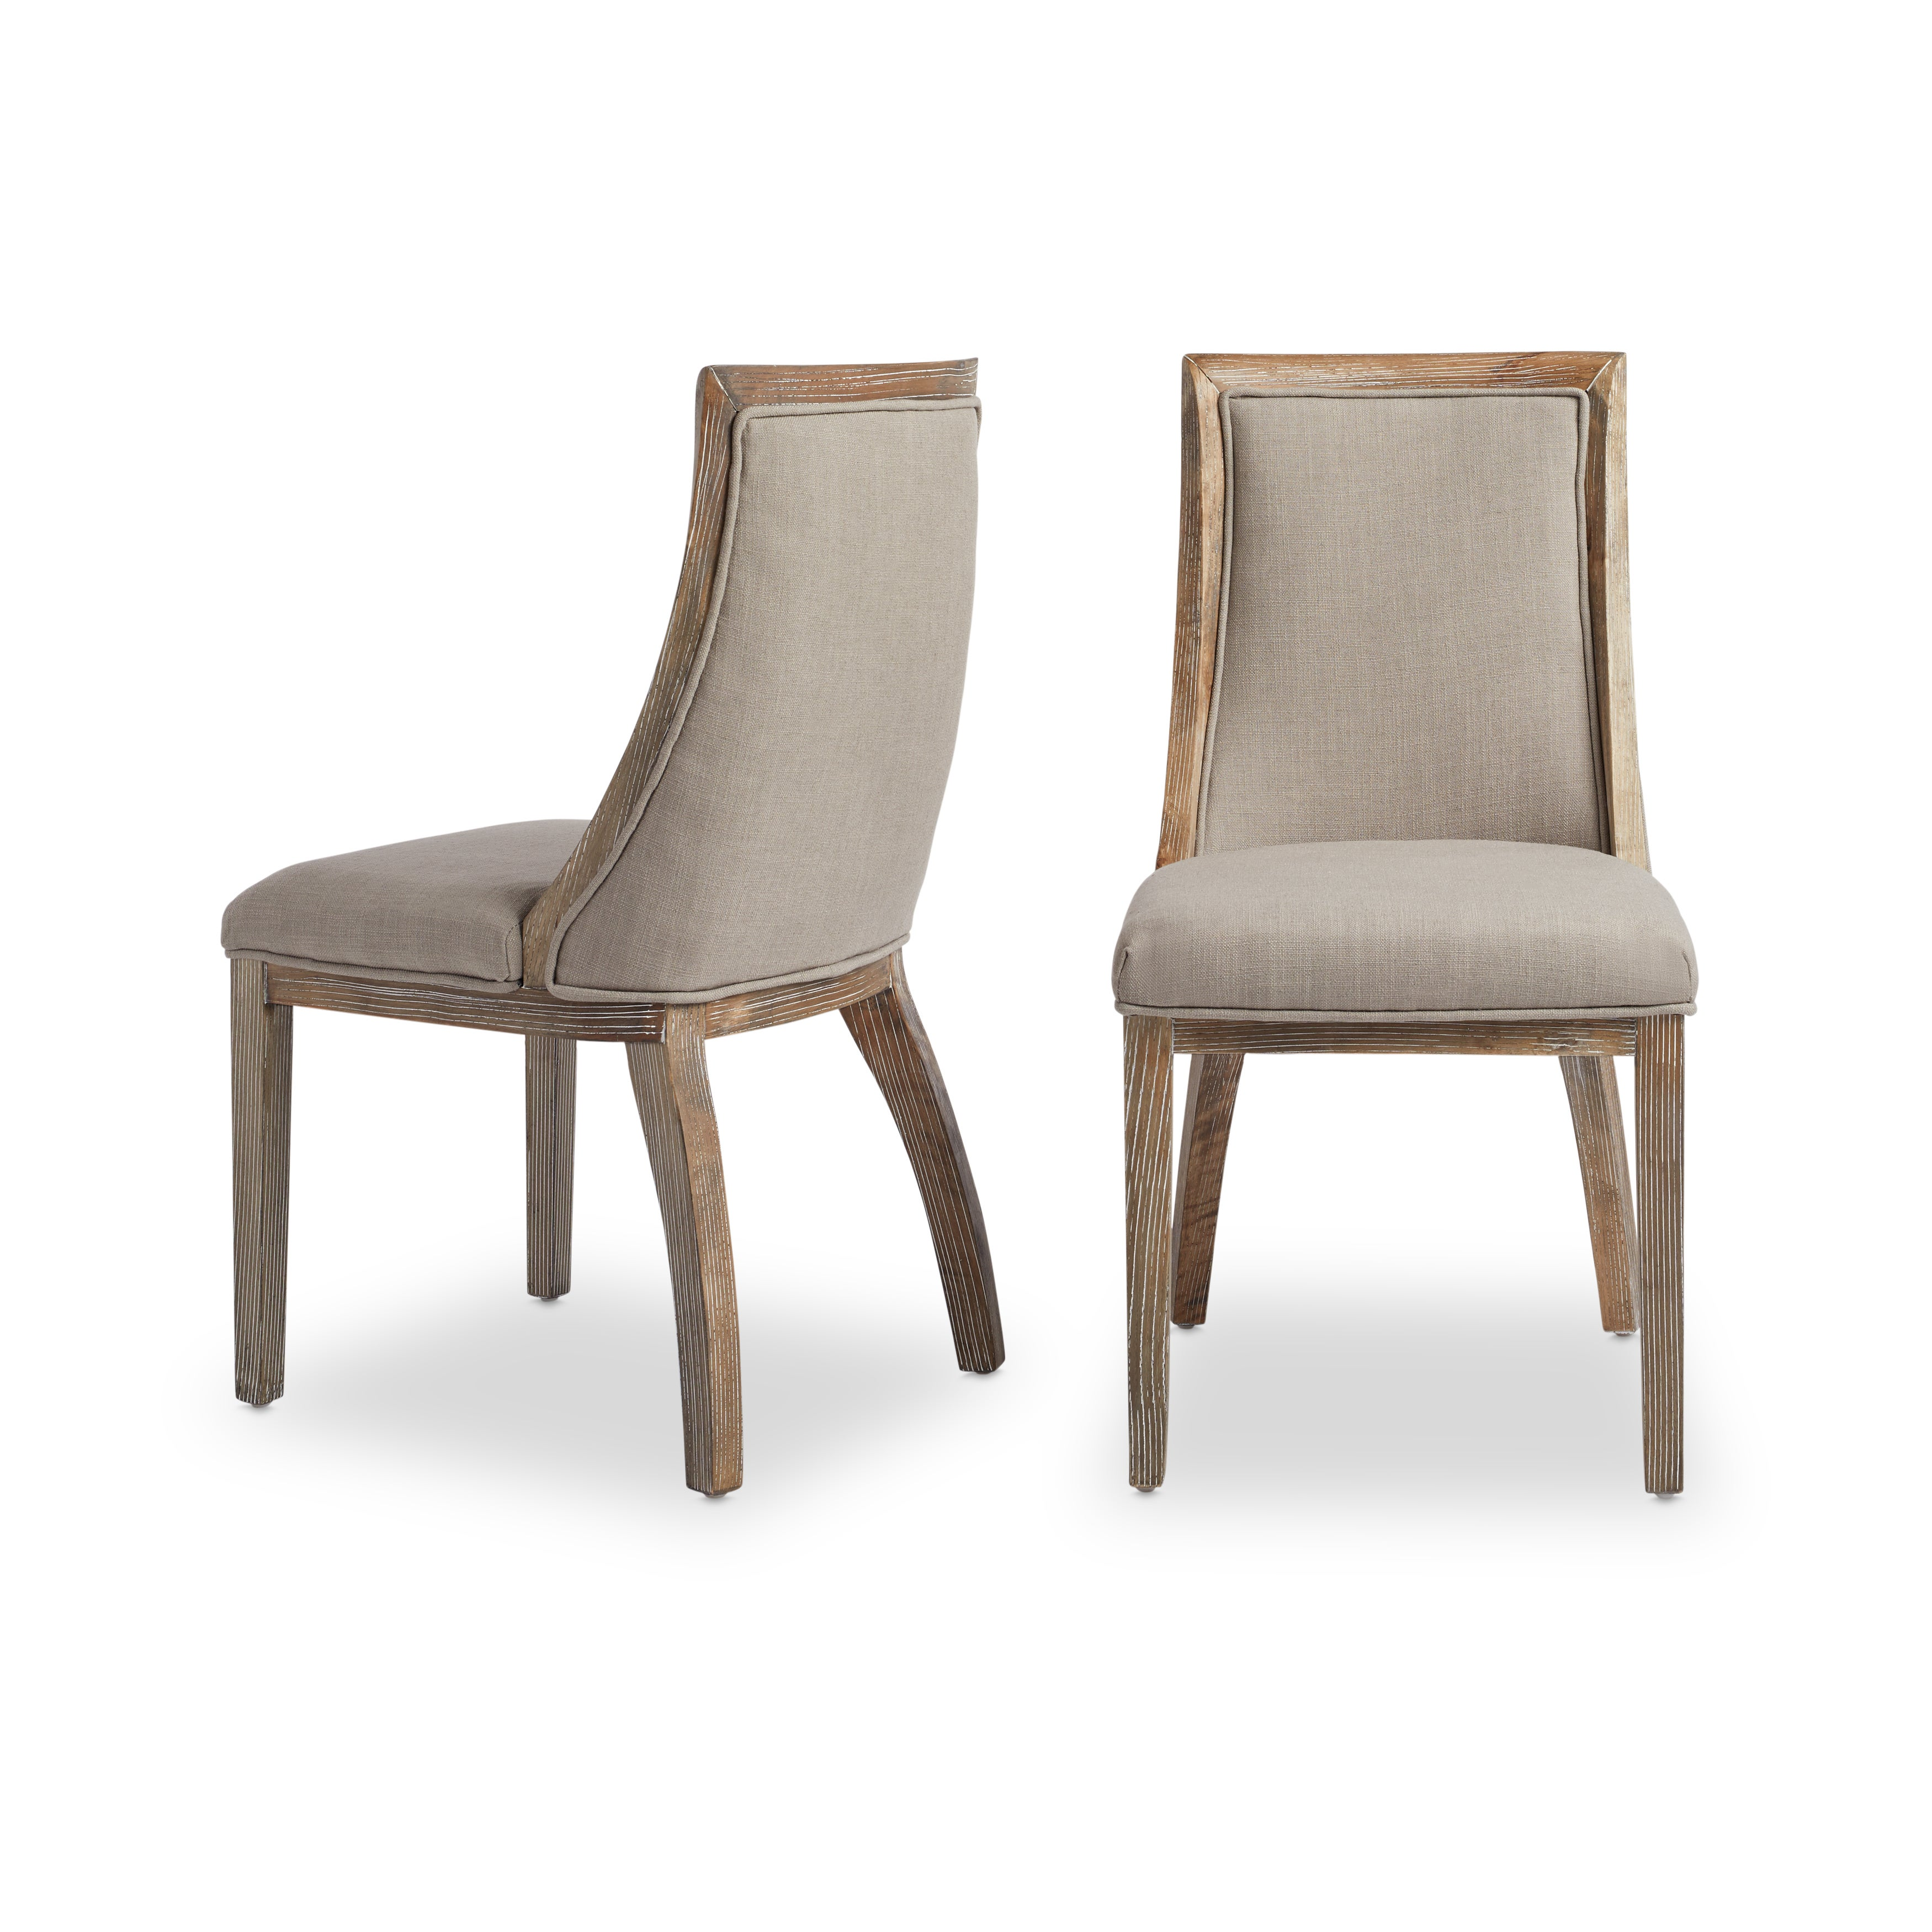 Attrayant Shop Stones U0026 Stripes Park Avenue Beige Linen Dining Chairs (Set Of 2)    Free Shipping Today   Overstock.com   8682598